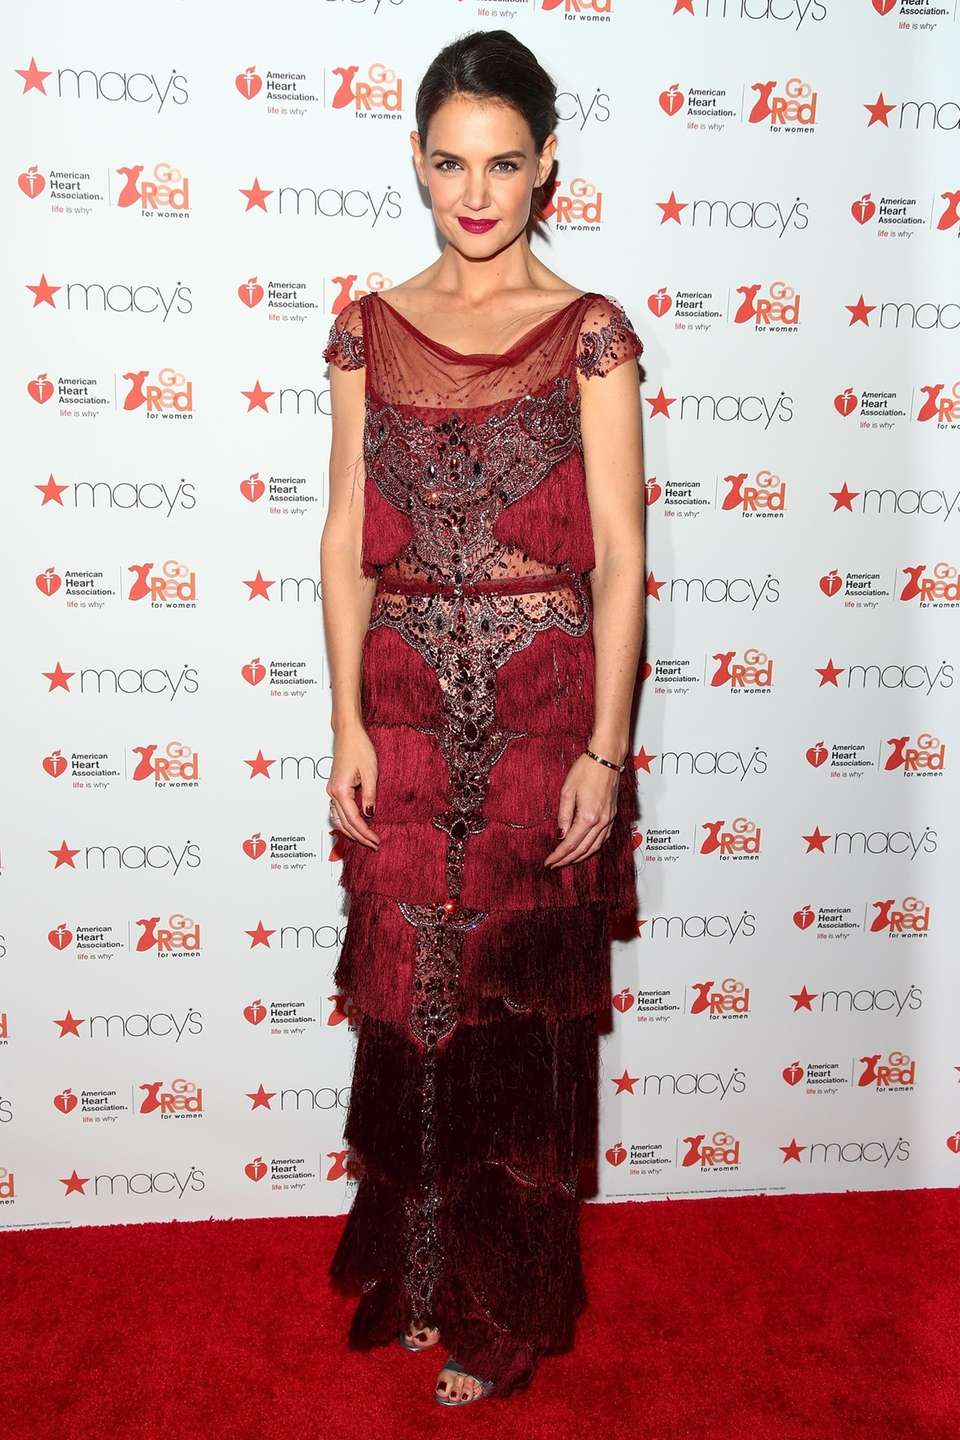 Katie Holmes attends the American Heart Association Go